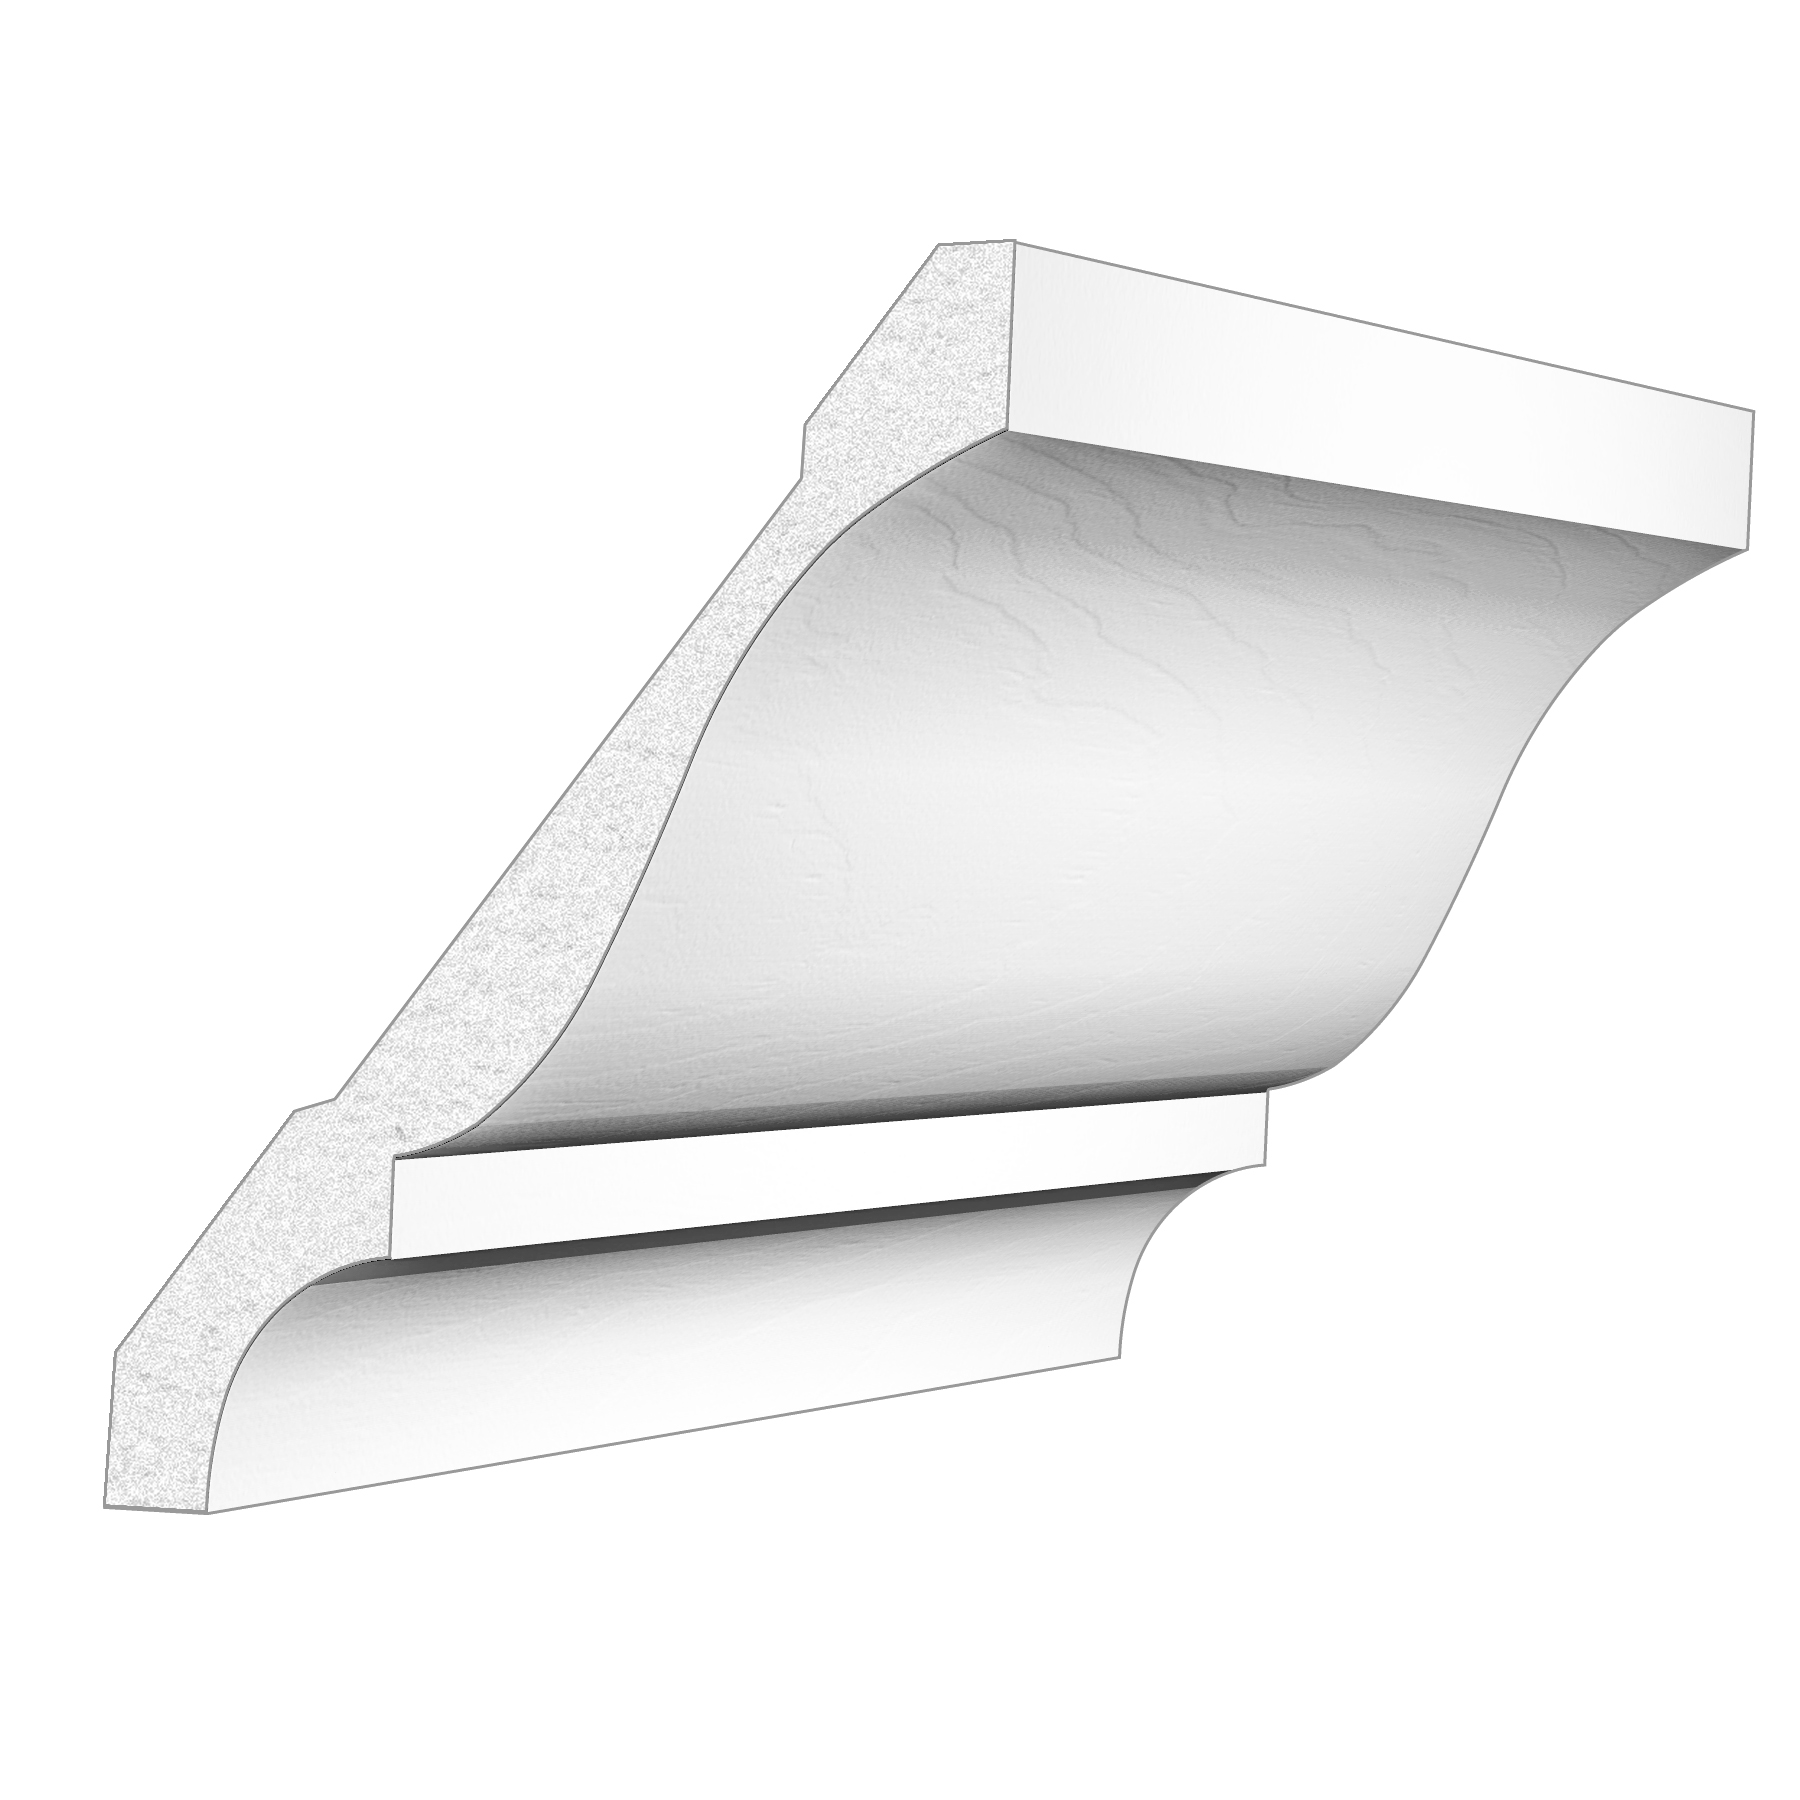 PALIGHT WHITE PVC 4″ CROWN MOULDING